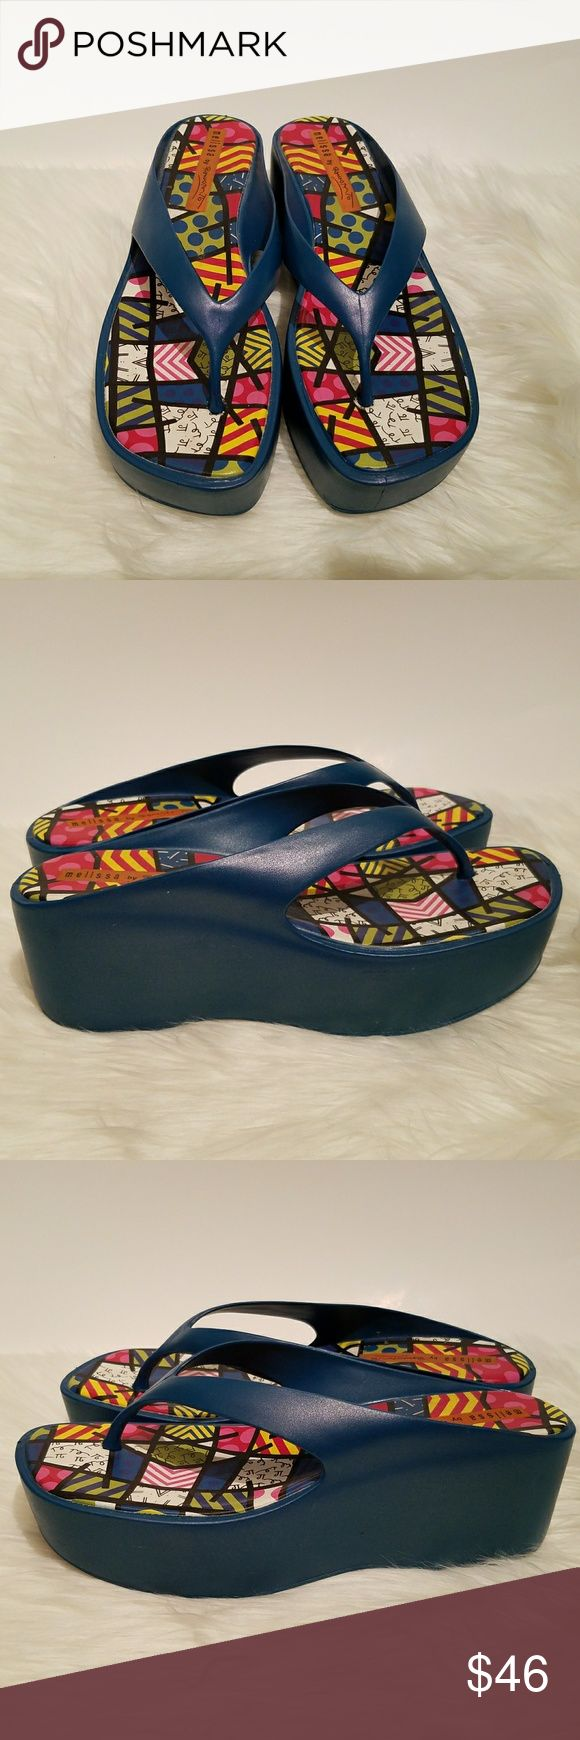 "Melissa by Romero Britto Thong Flip Flop  Sandals This is a pair of Melissa sandals by Miami Neo-Pop Artist Romero Britto.  1 1/2"" platform, 2 1/2"" heel Excellent used condition, minimal wear to soles 29xxbci Melissa Shoes Sandals"